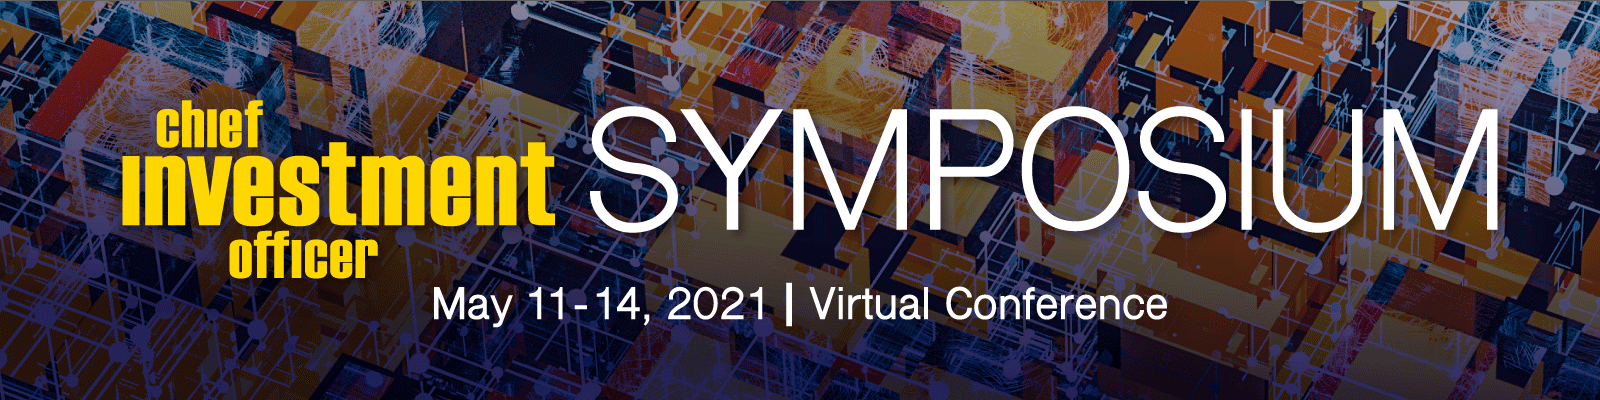 Virtual Chief Investment Officer Symposium 2021